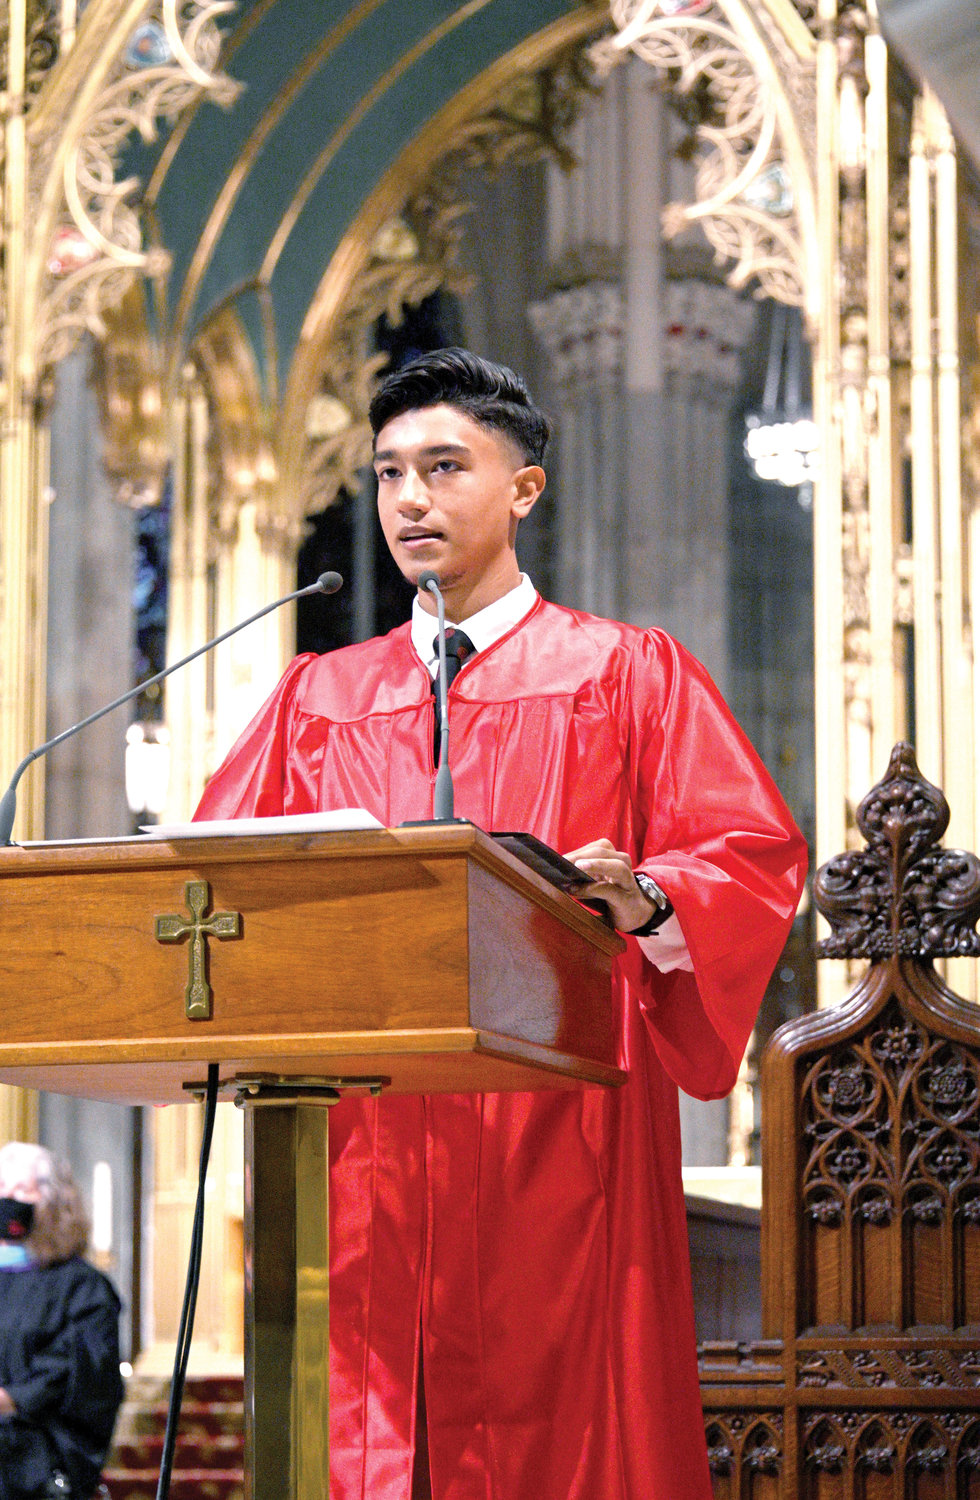 Co-valedictorian Steven Dumeng of La Salle Academy's Class of 2020 addresses fellow graduates observing social distancing in their pews during the school's 171st commencement exercises Aug. 13 at St. Patrick's Cathedral.